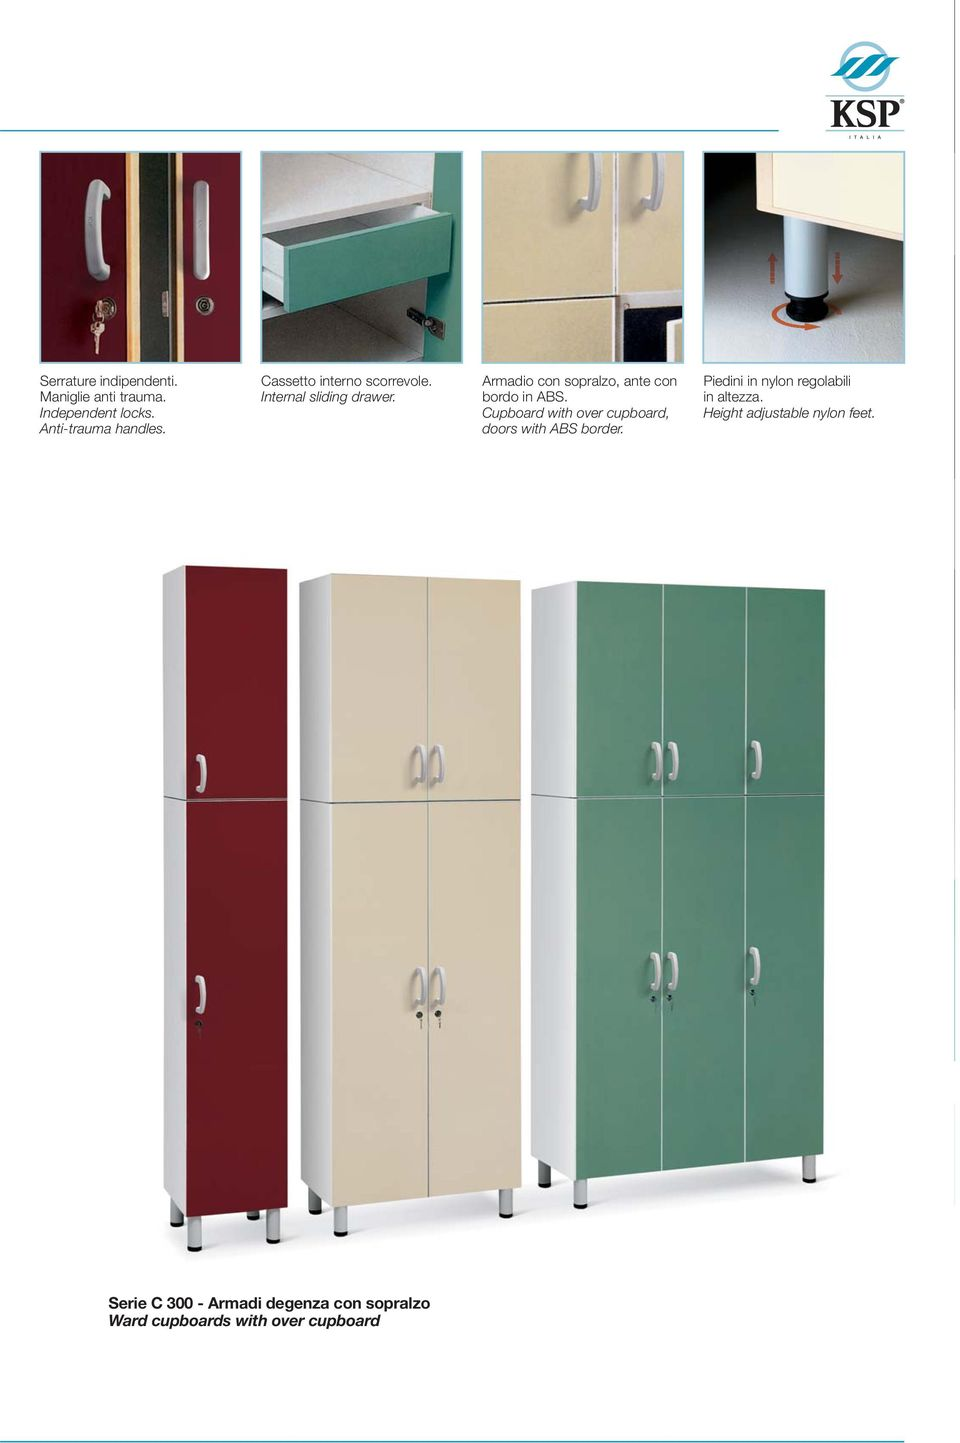 Armadio con sopralzo, ante con bordo in ABS. Cupboard with over cupboard, doors with ABS border.